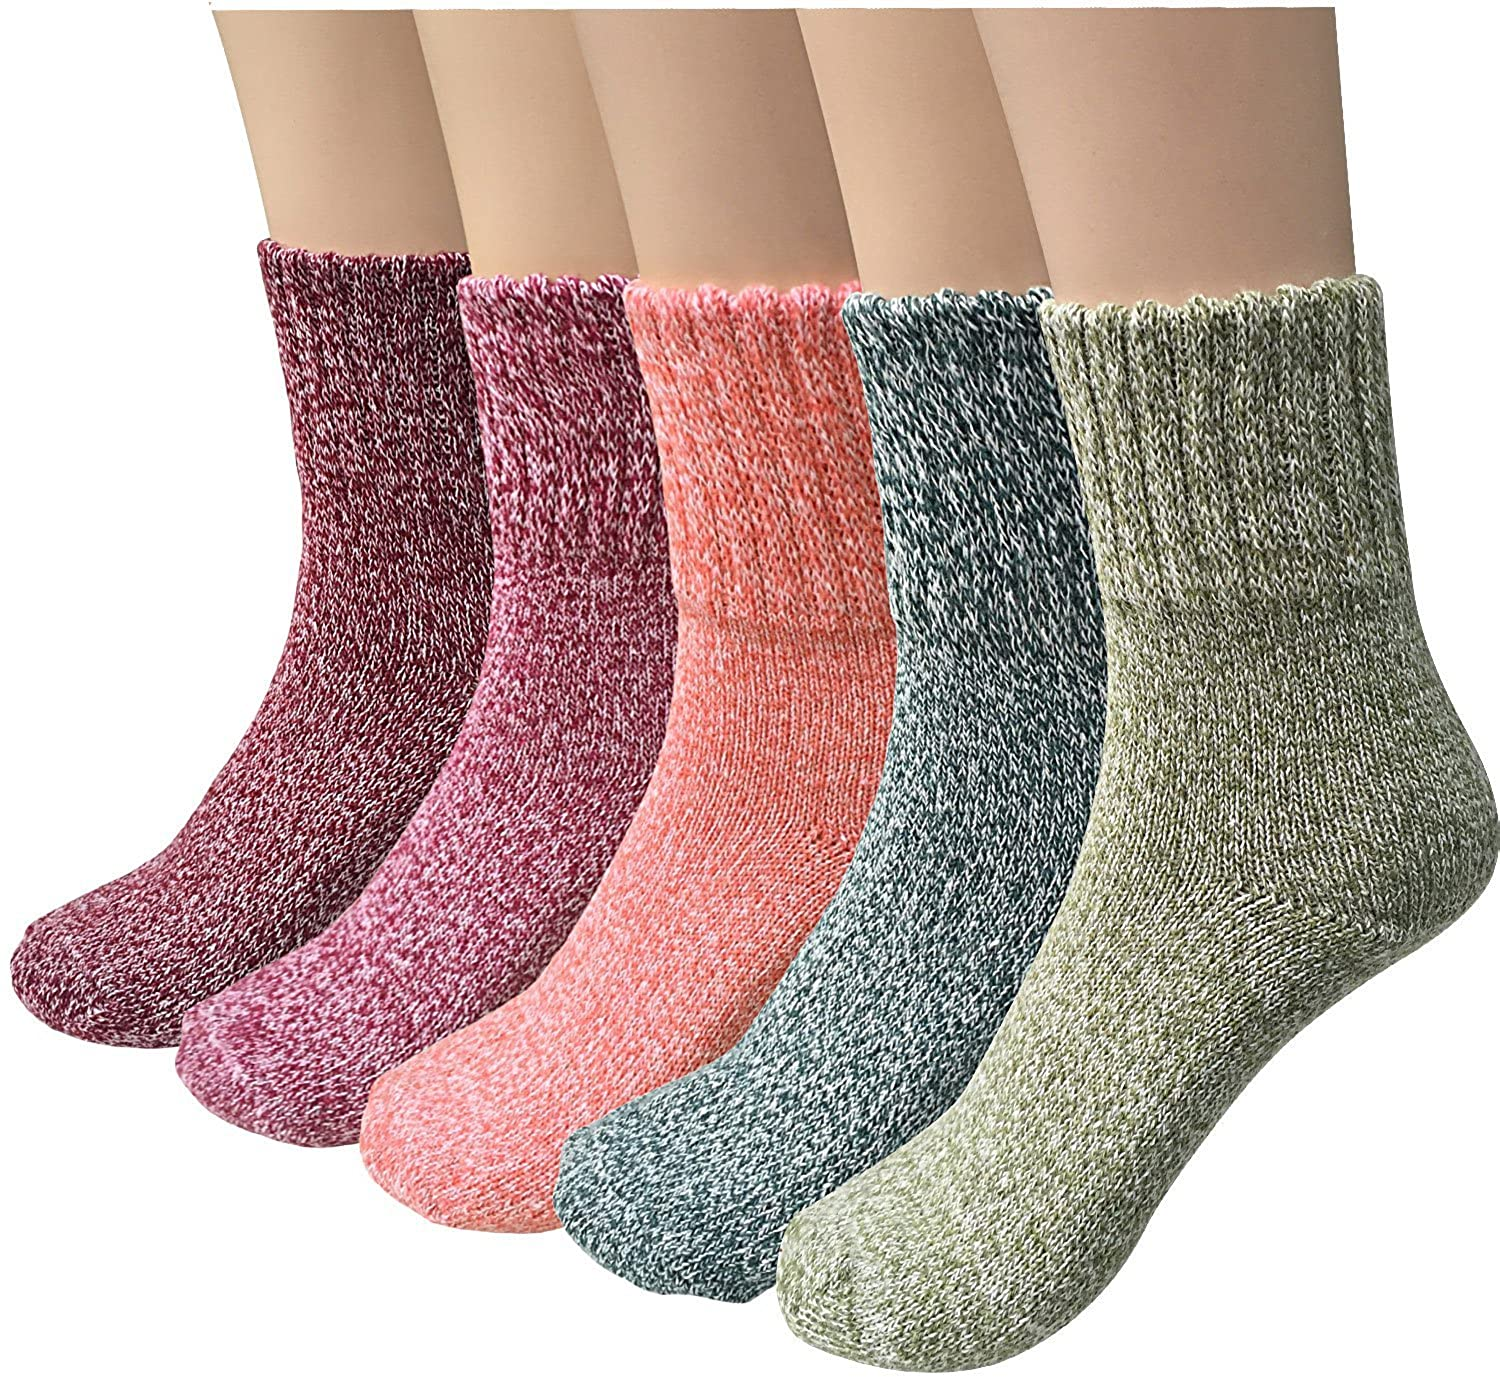 Winter Socks 5 Pairs, Vintage Style Chunky Knit Wool Cashmere,Soft Warm Thick Knit Crew Casual Winter Cold Wool Socks (MixedColors2-5pack)